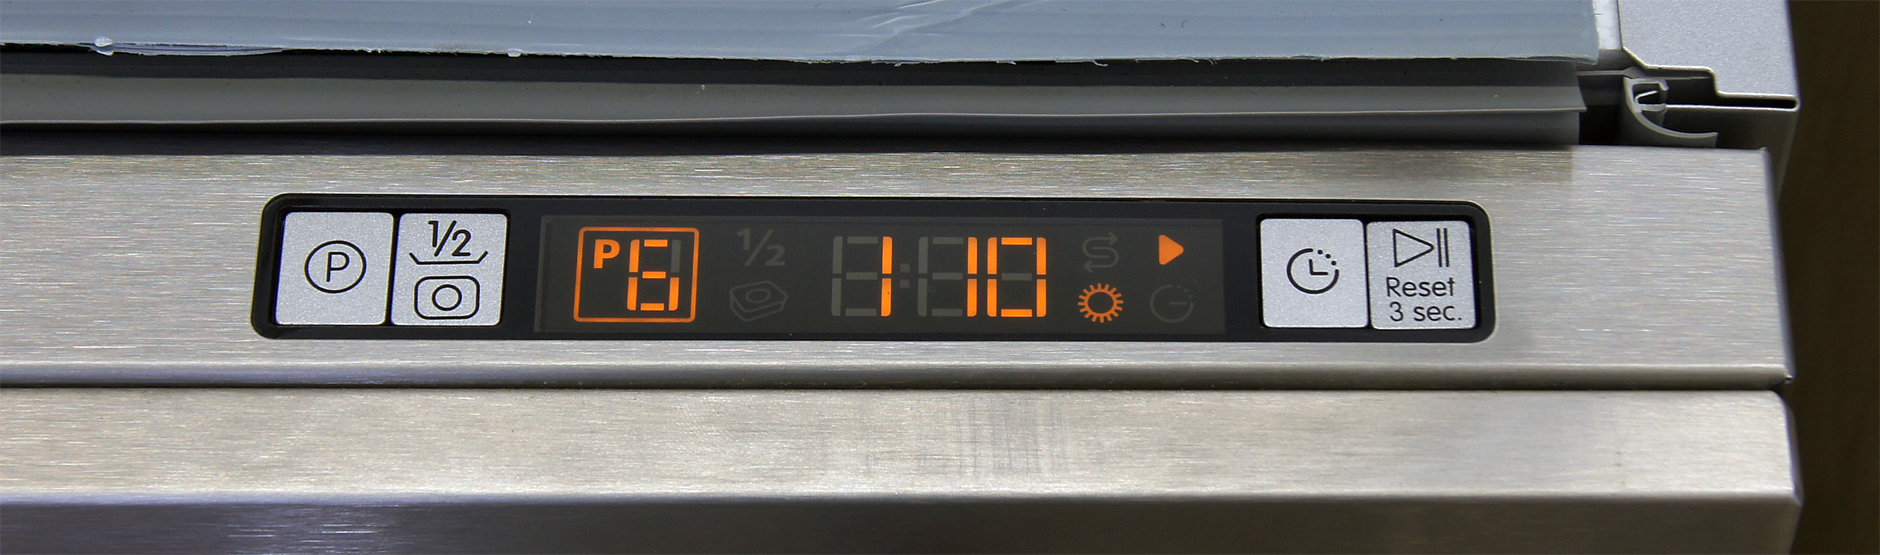 Blomberg DWT57500SS control display